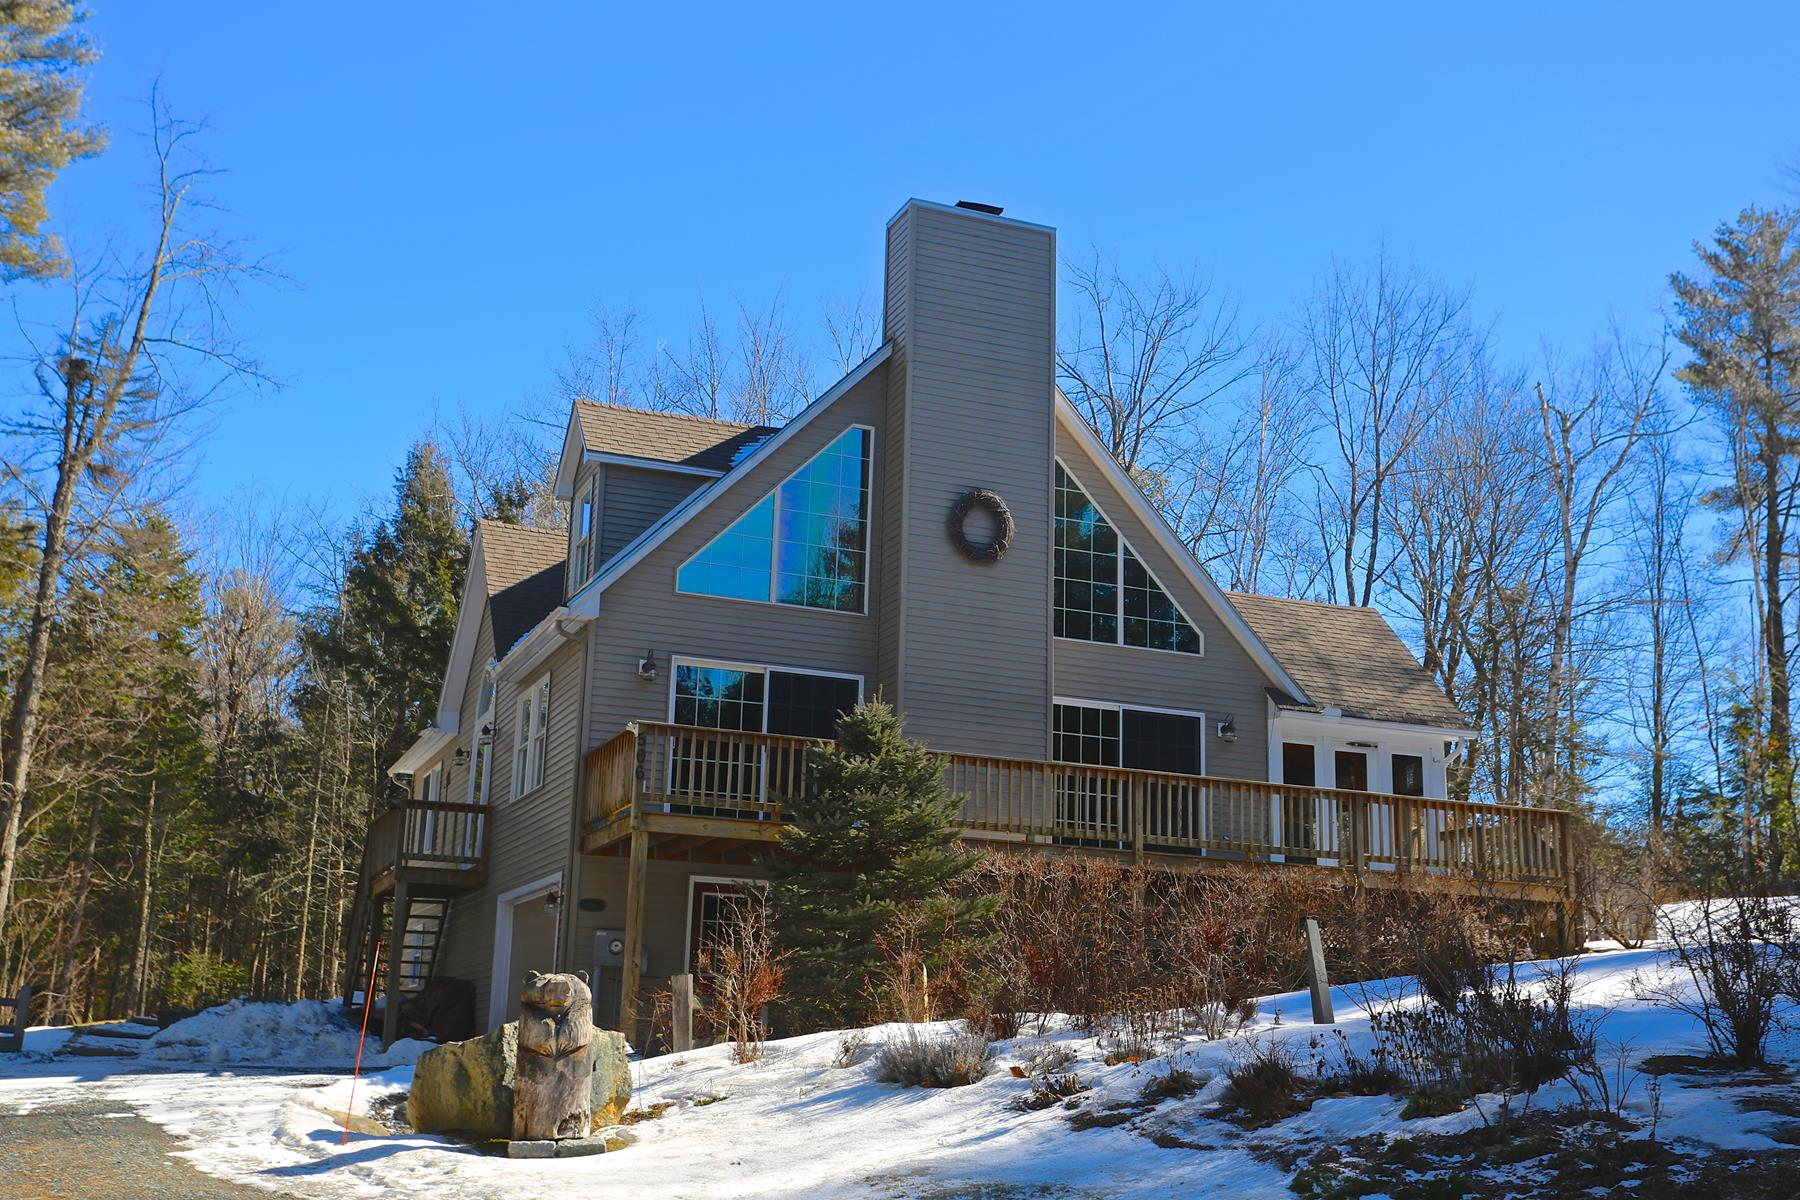 Single Family Home for Sale at 506 Forest Acres, New London 506 Forest Acres Rd New London, New Hampshire, 03257 United States